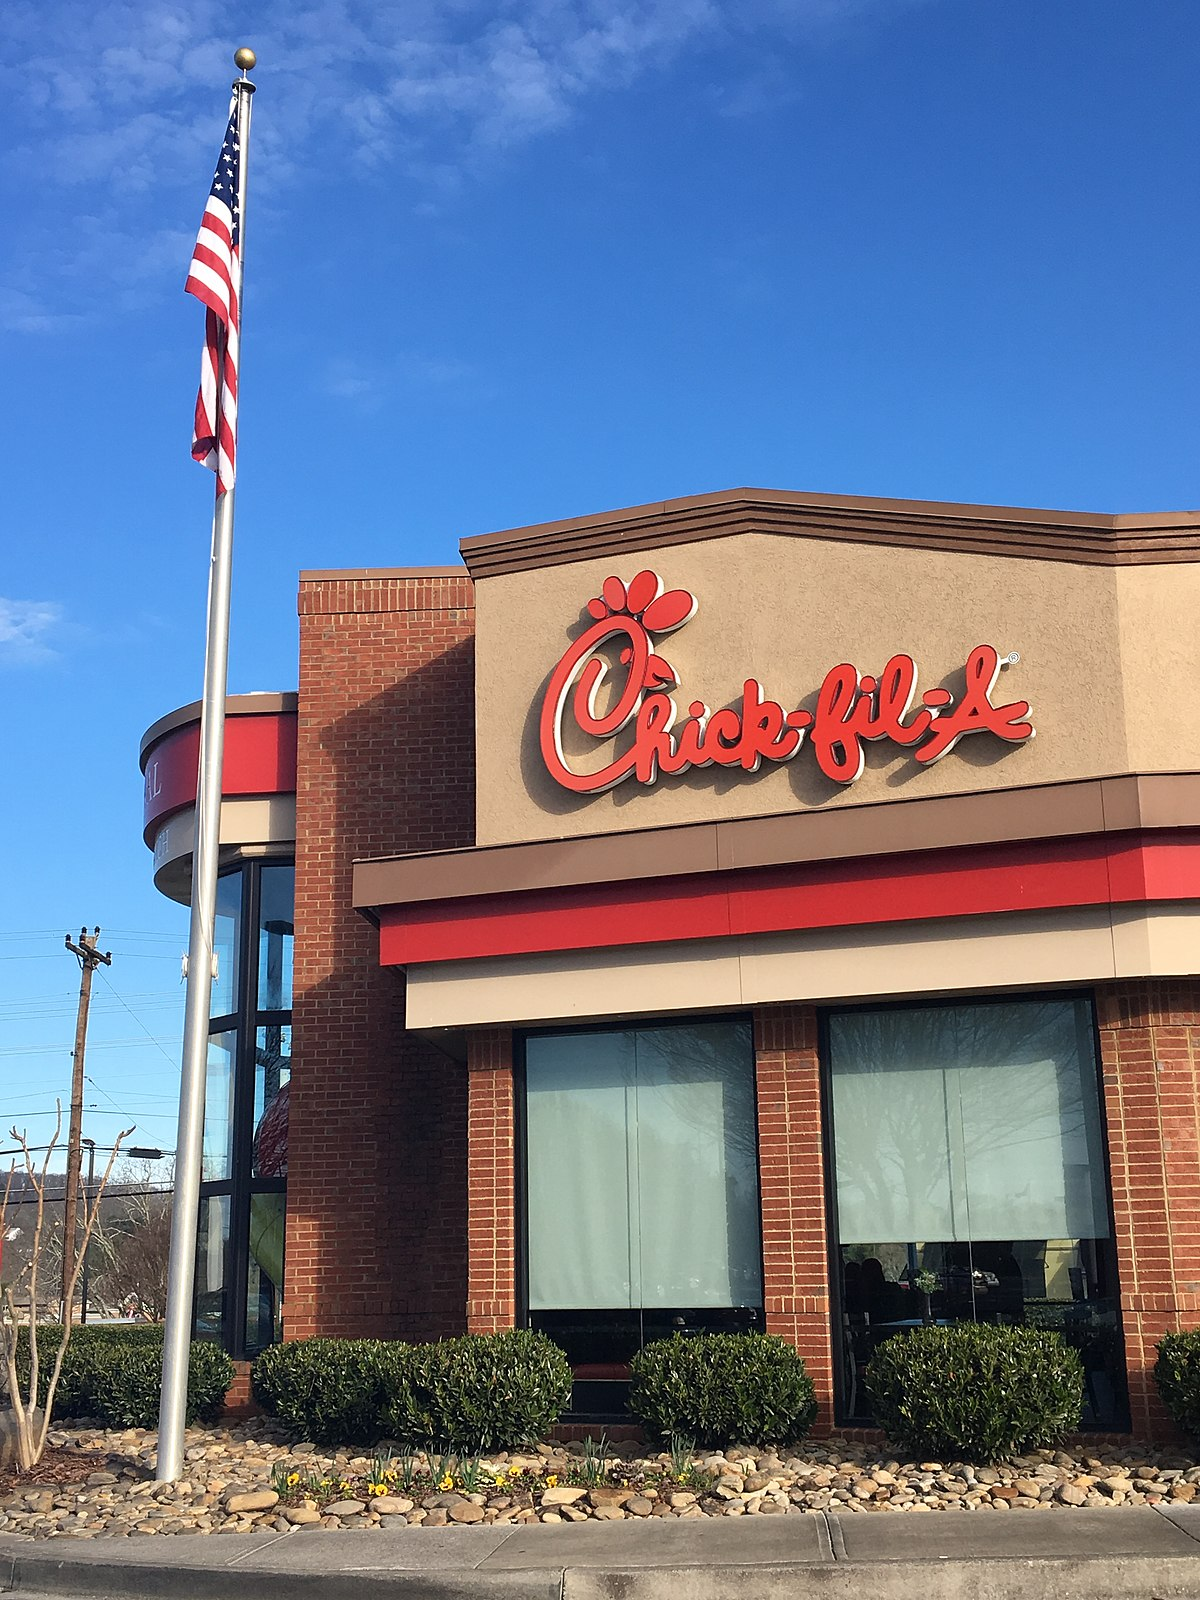 photograph relating to Chickfila Application Printable referred to as Chick-fil-A - Wikipedia